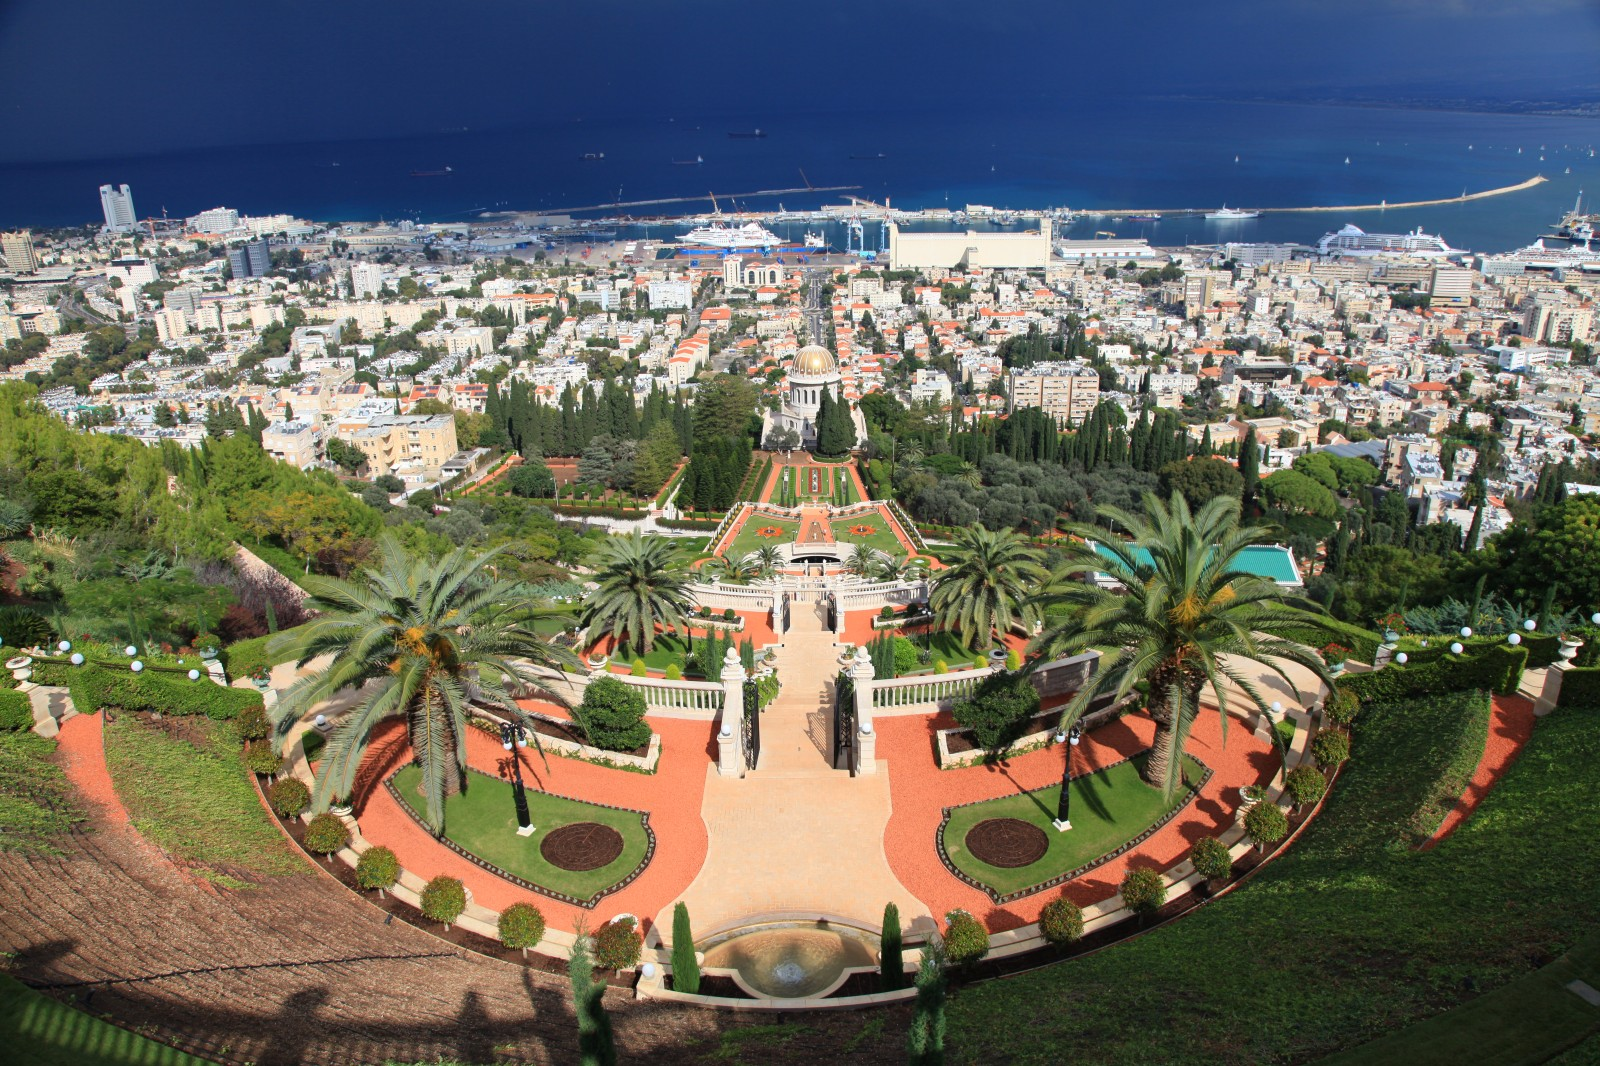 Upper Bahai gardens - Bahai is the 4th largest monotheistic relion, operating more like a sect. The temple in the gardens is their most sacred place. You can take guided tour of the upper part.